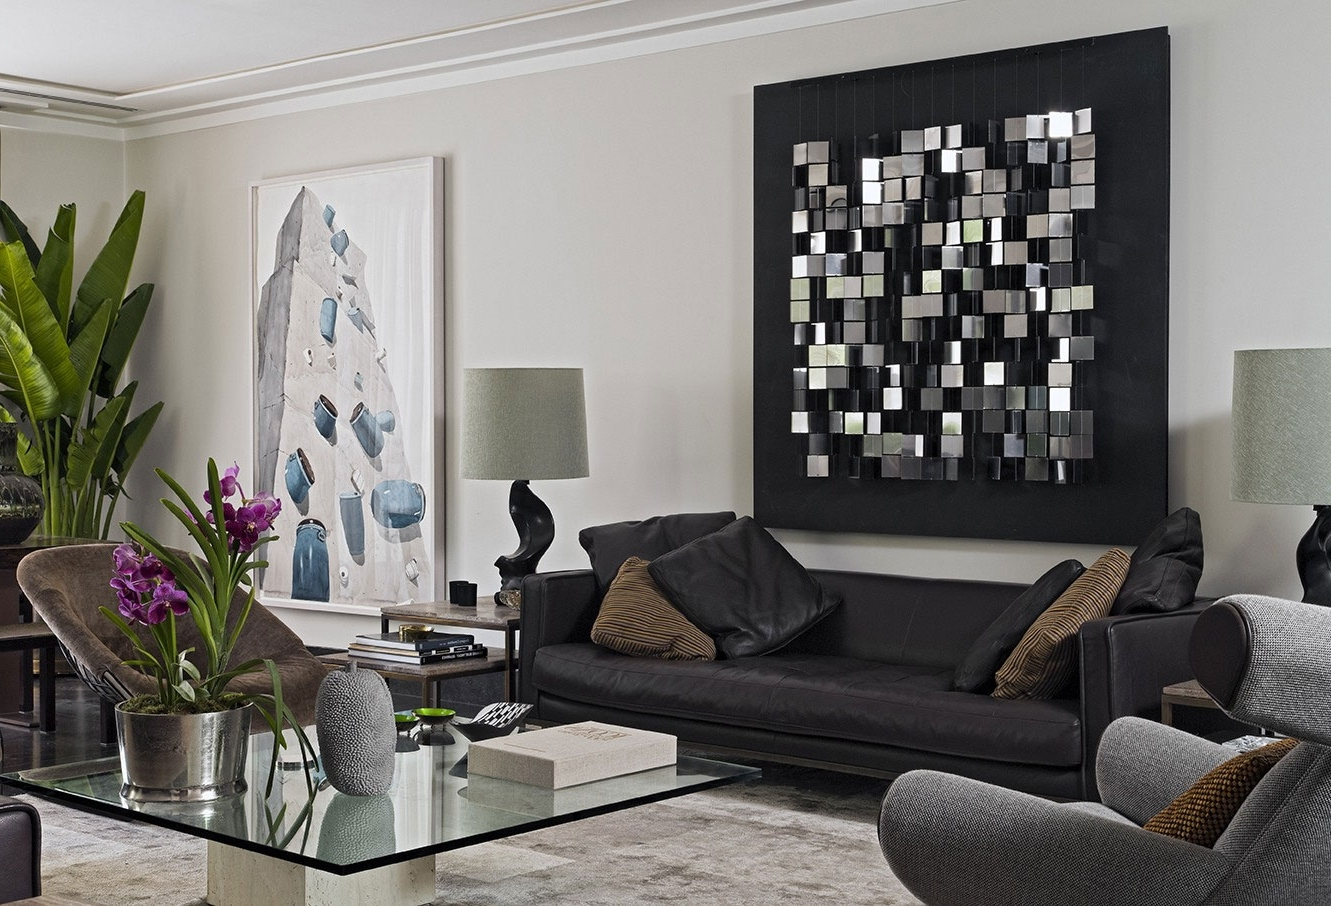 Well Known Living Room Wall Art Inside Mozaic Wall Art Decor For Living Room : Ideas Of Wall Art Decor For (View 12 of 15)